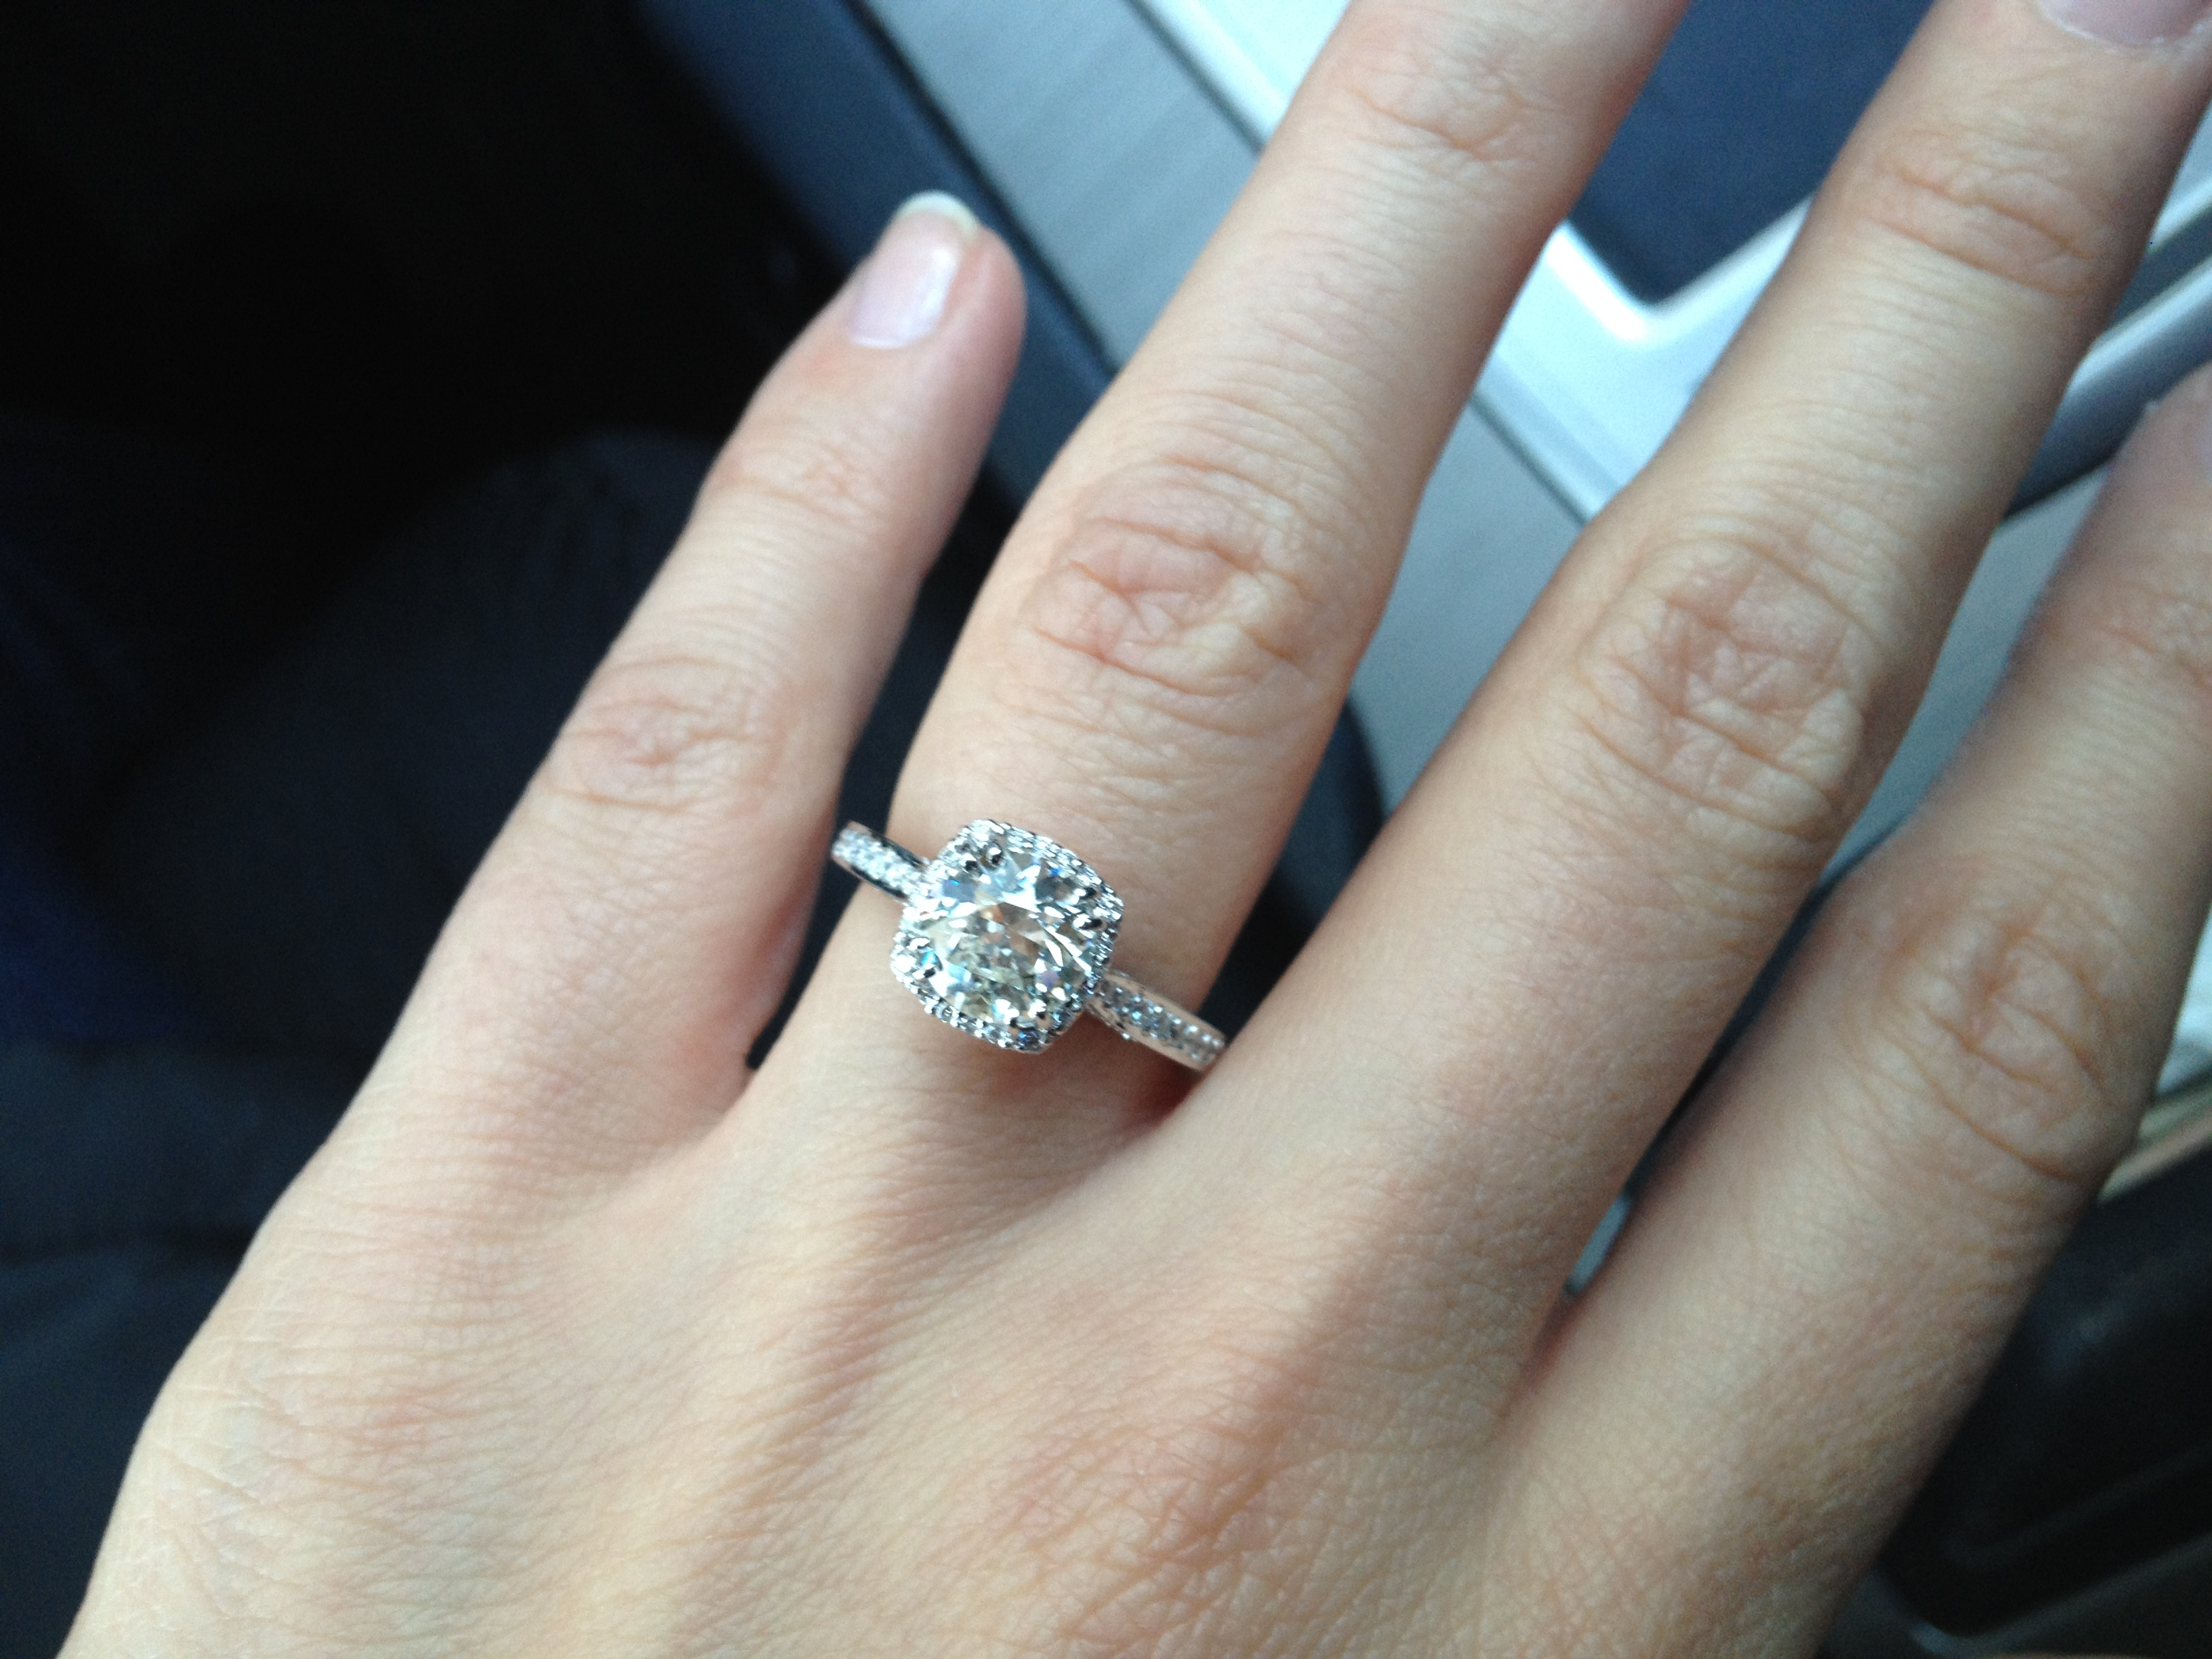 ring finger rings your reasons middle wear to diamond why you the should engagement on